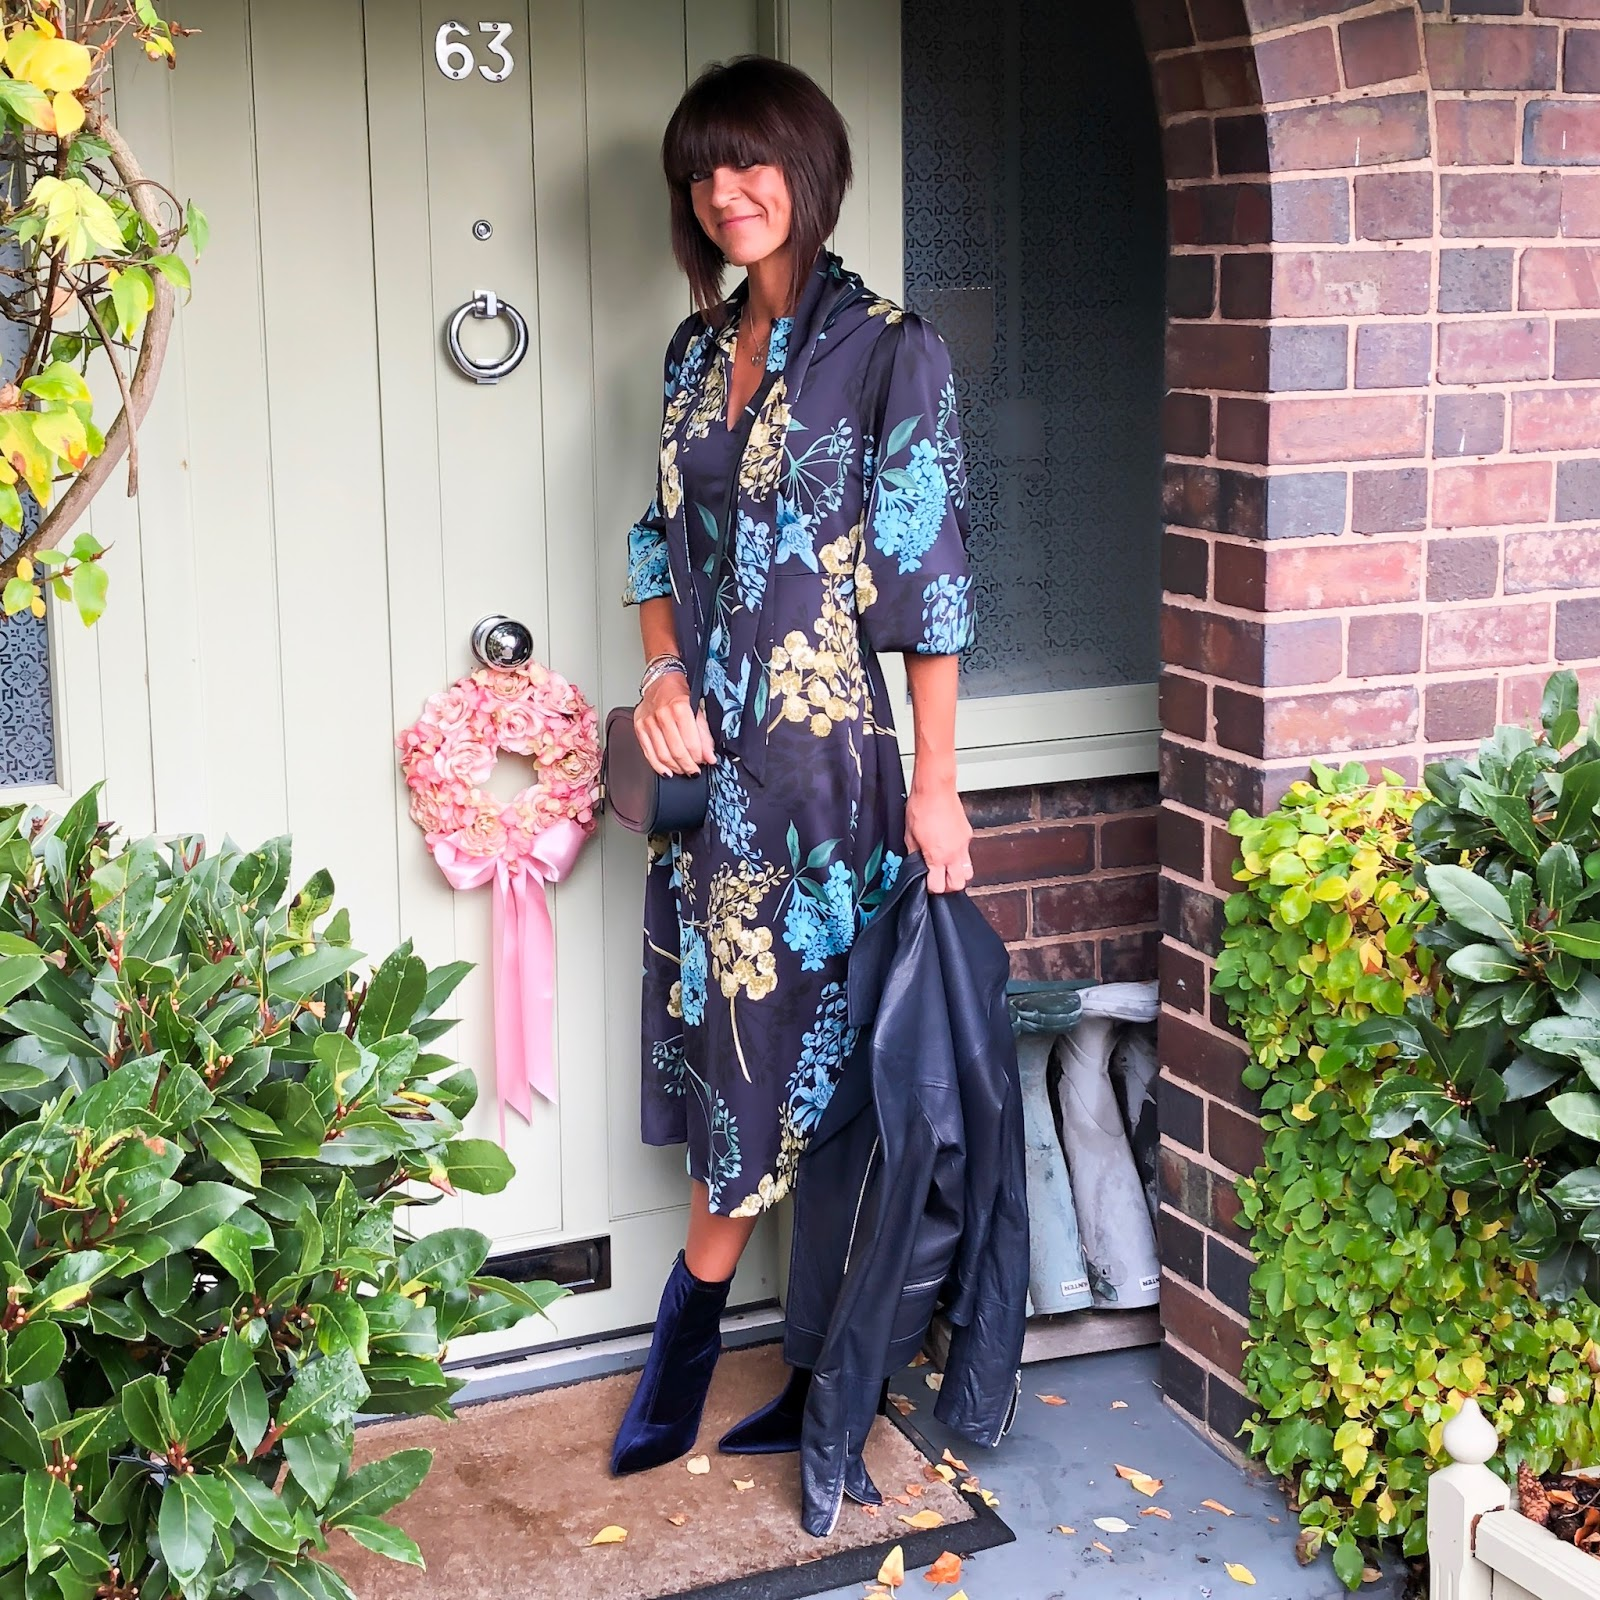 my midlife fashion, marks and spencer floral print long sleeve maxi dress, massimo dutti leather biker jacket, marks and spencer stiletto heel side zip ankle boot